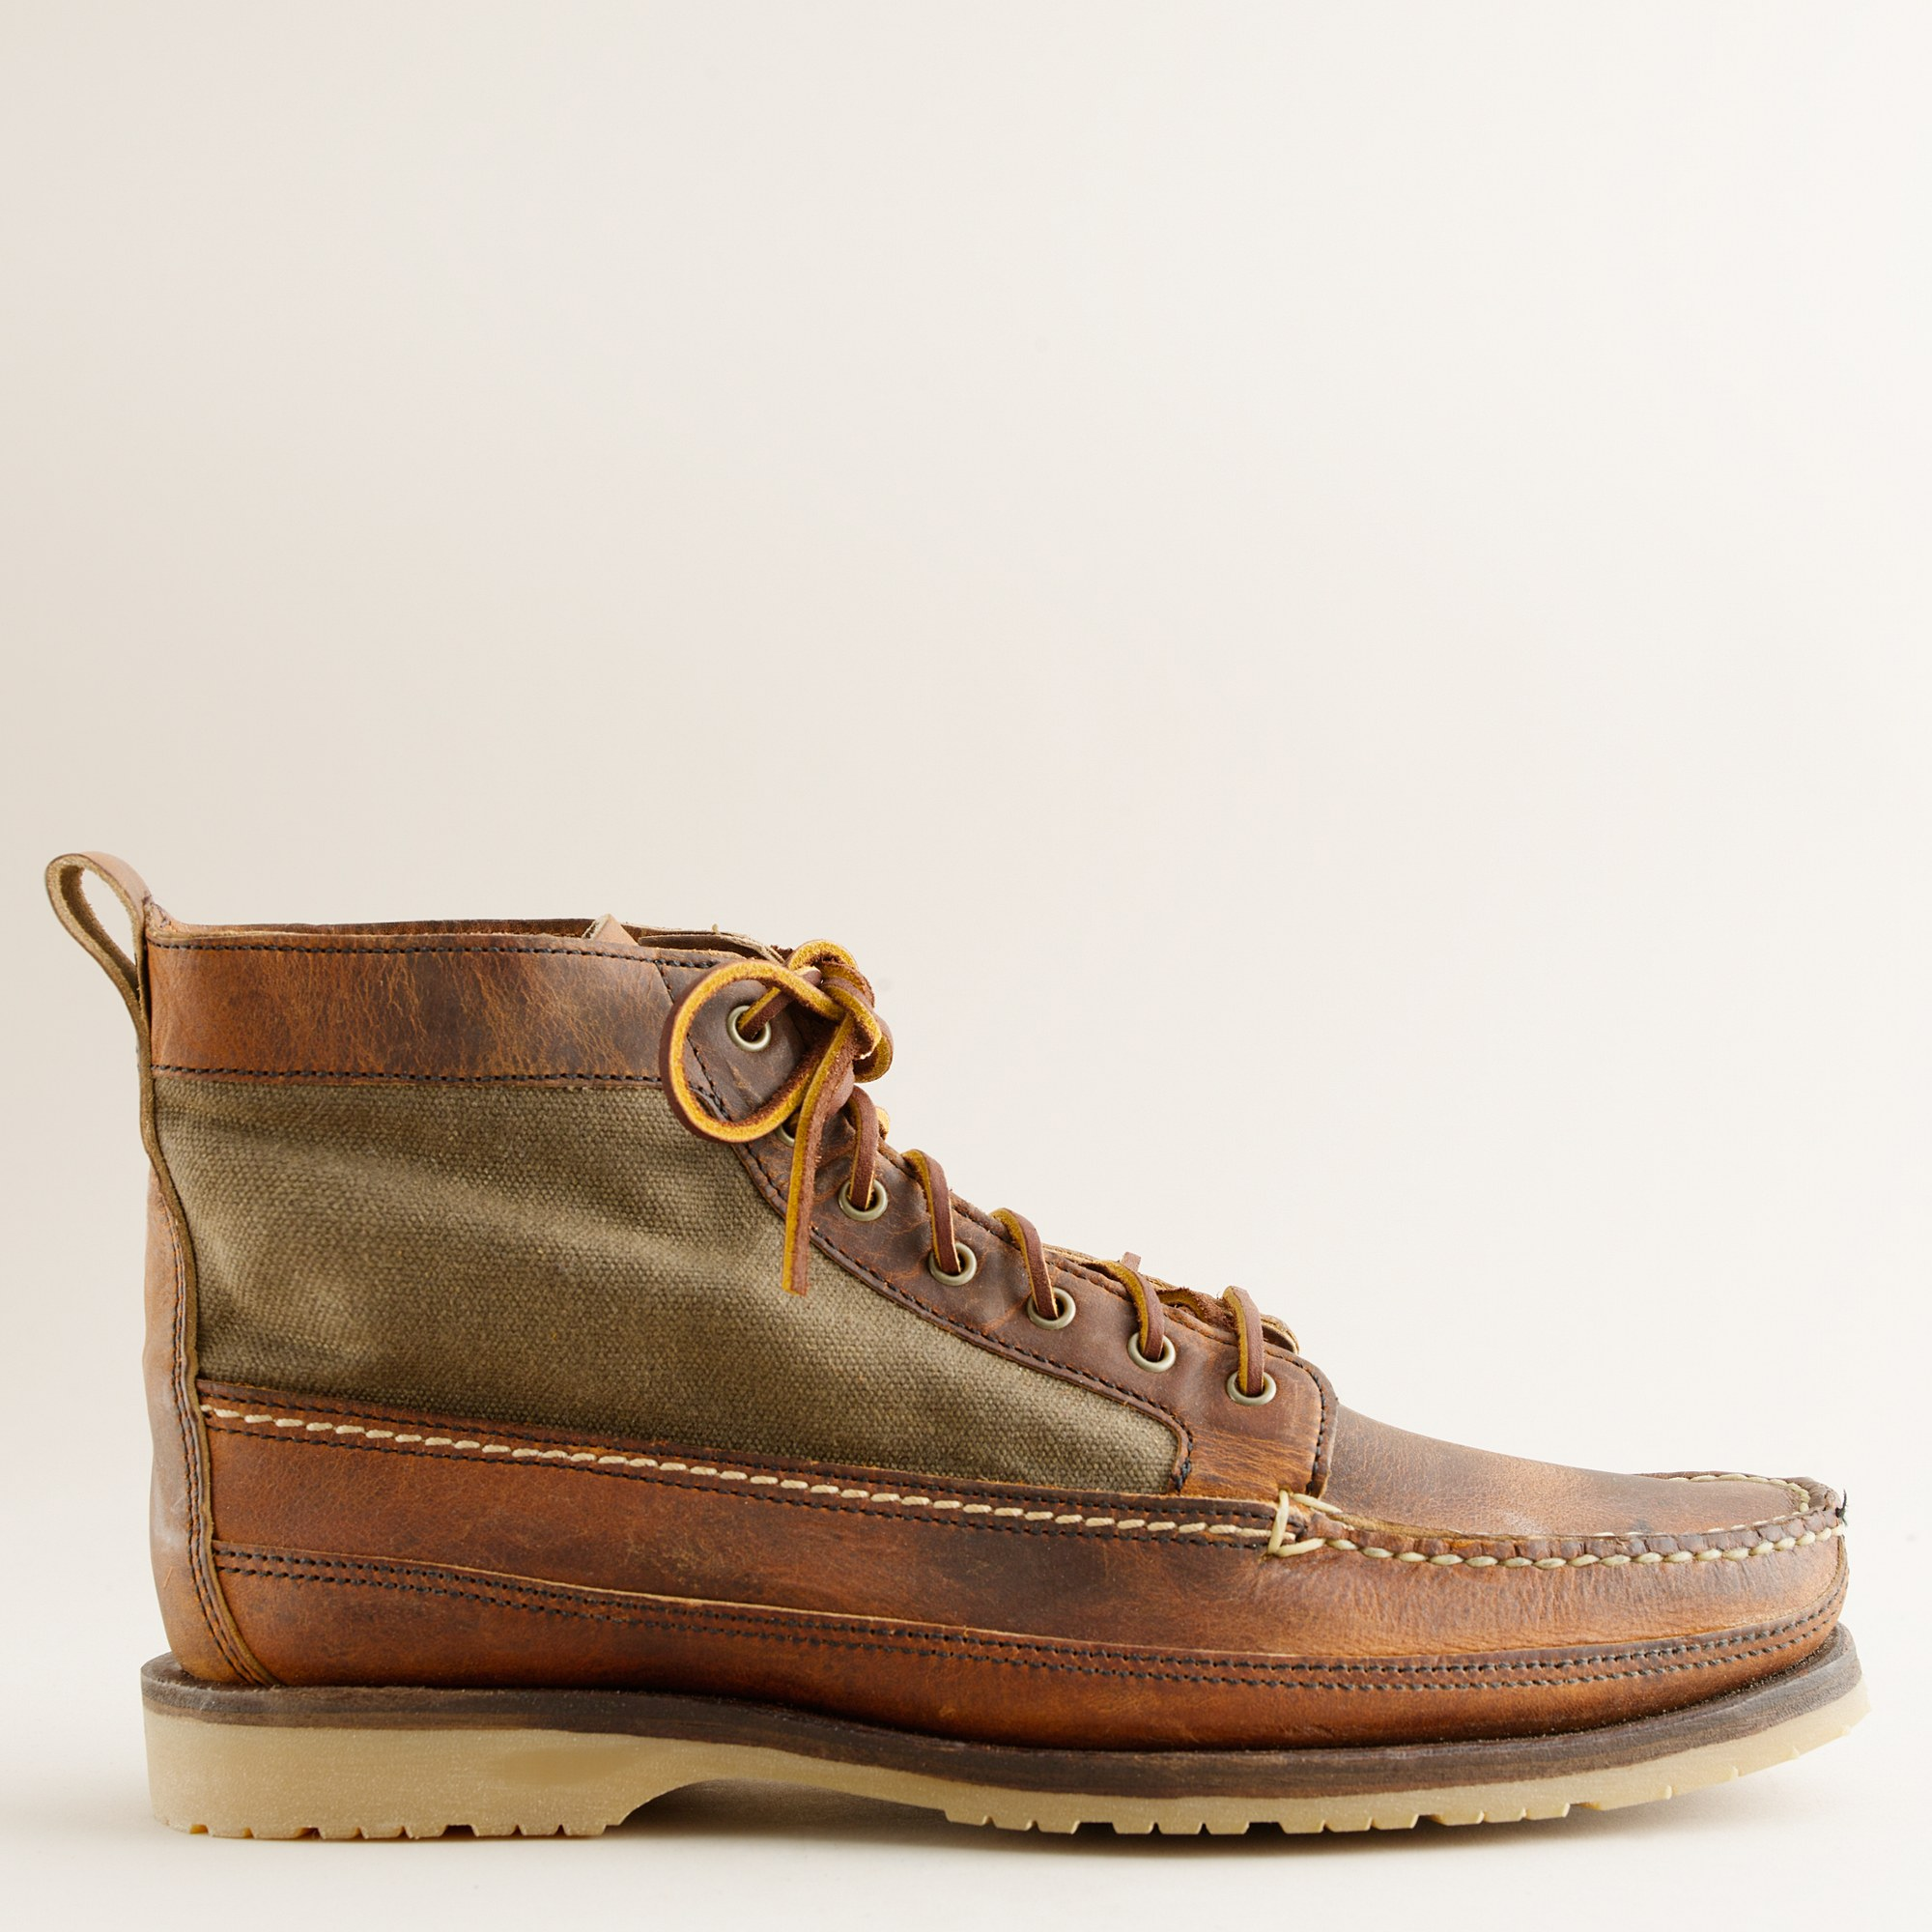 798ae7858d6f60 Lyst - J.Crew Red Wing® Wabasha Chukka Boots in Brown for Men